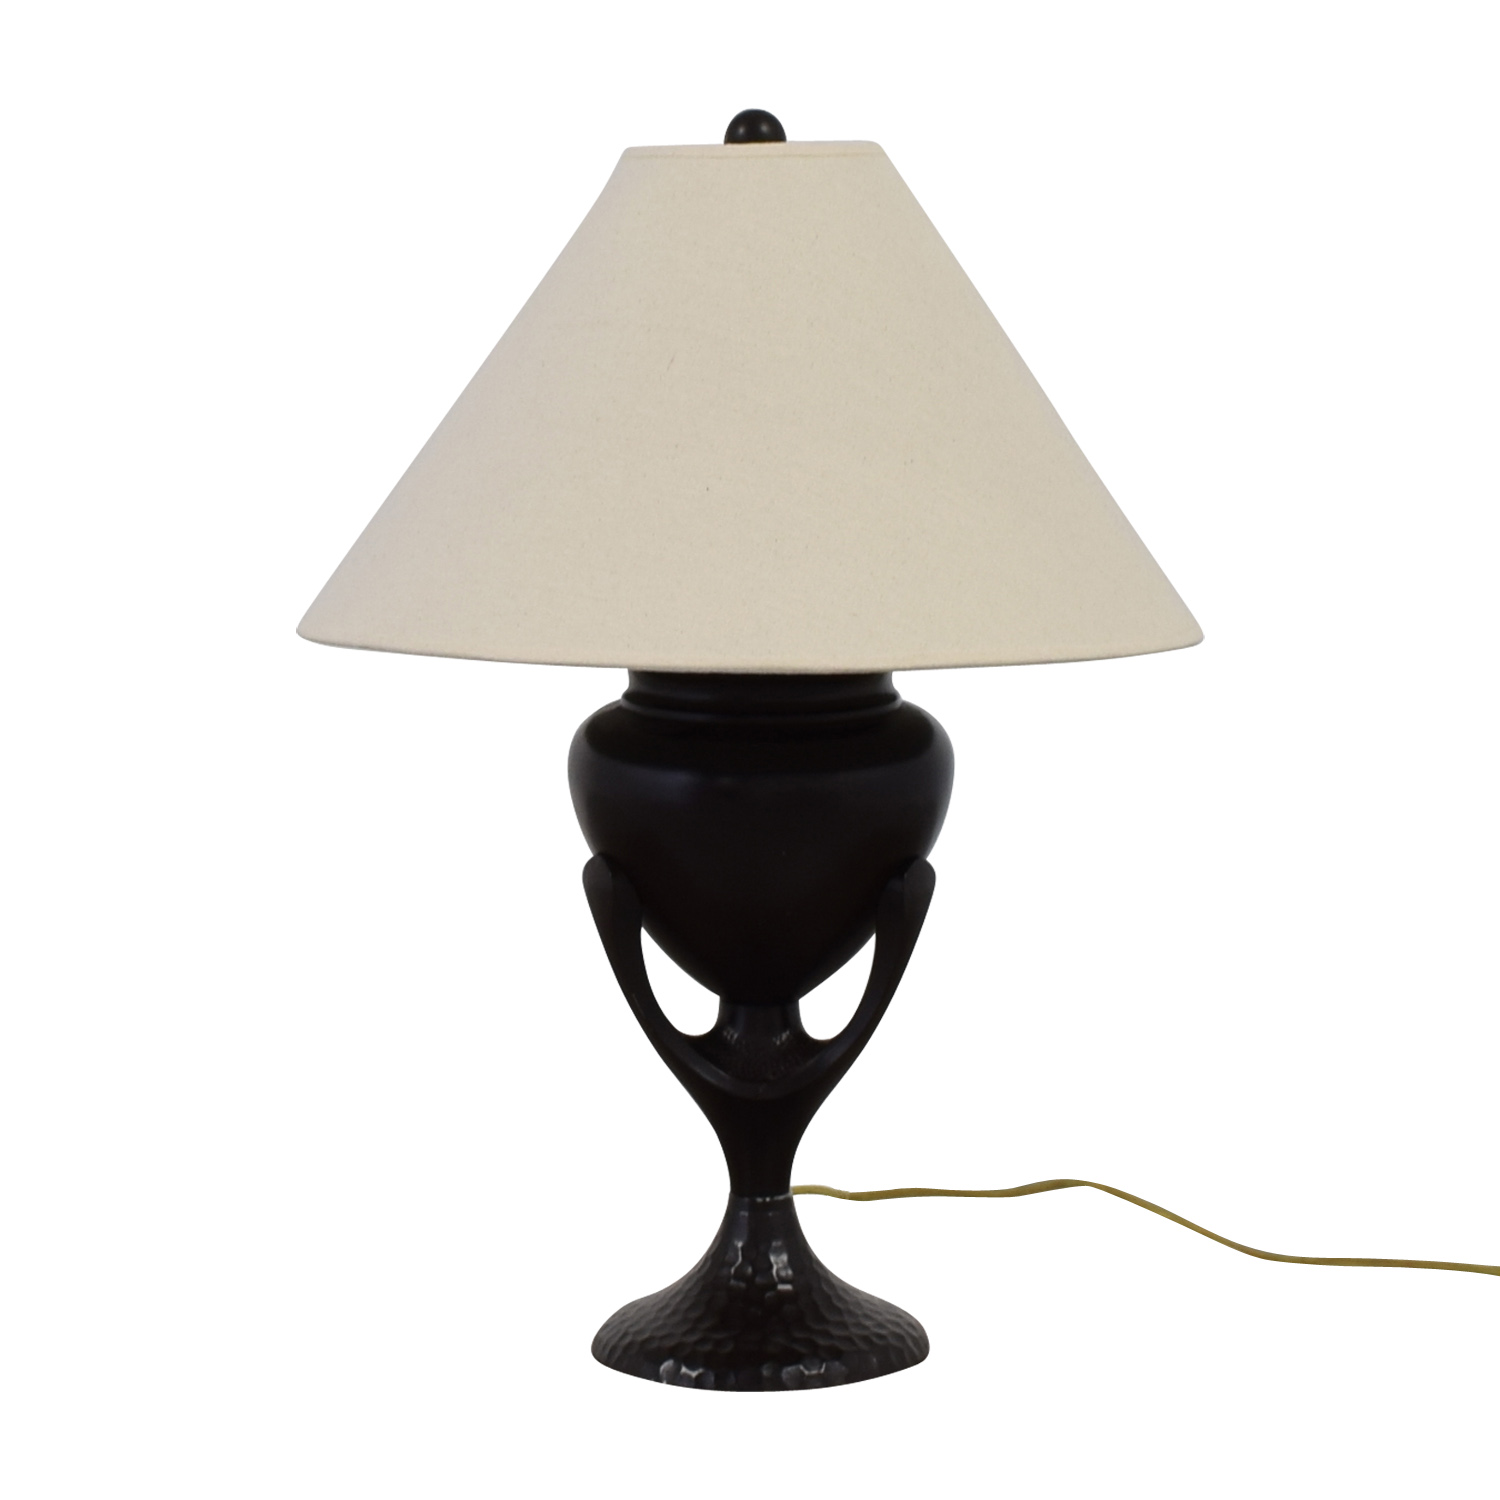 Beige with Brown Sculpted Metal Base Lamp Brown, White